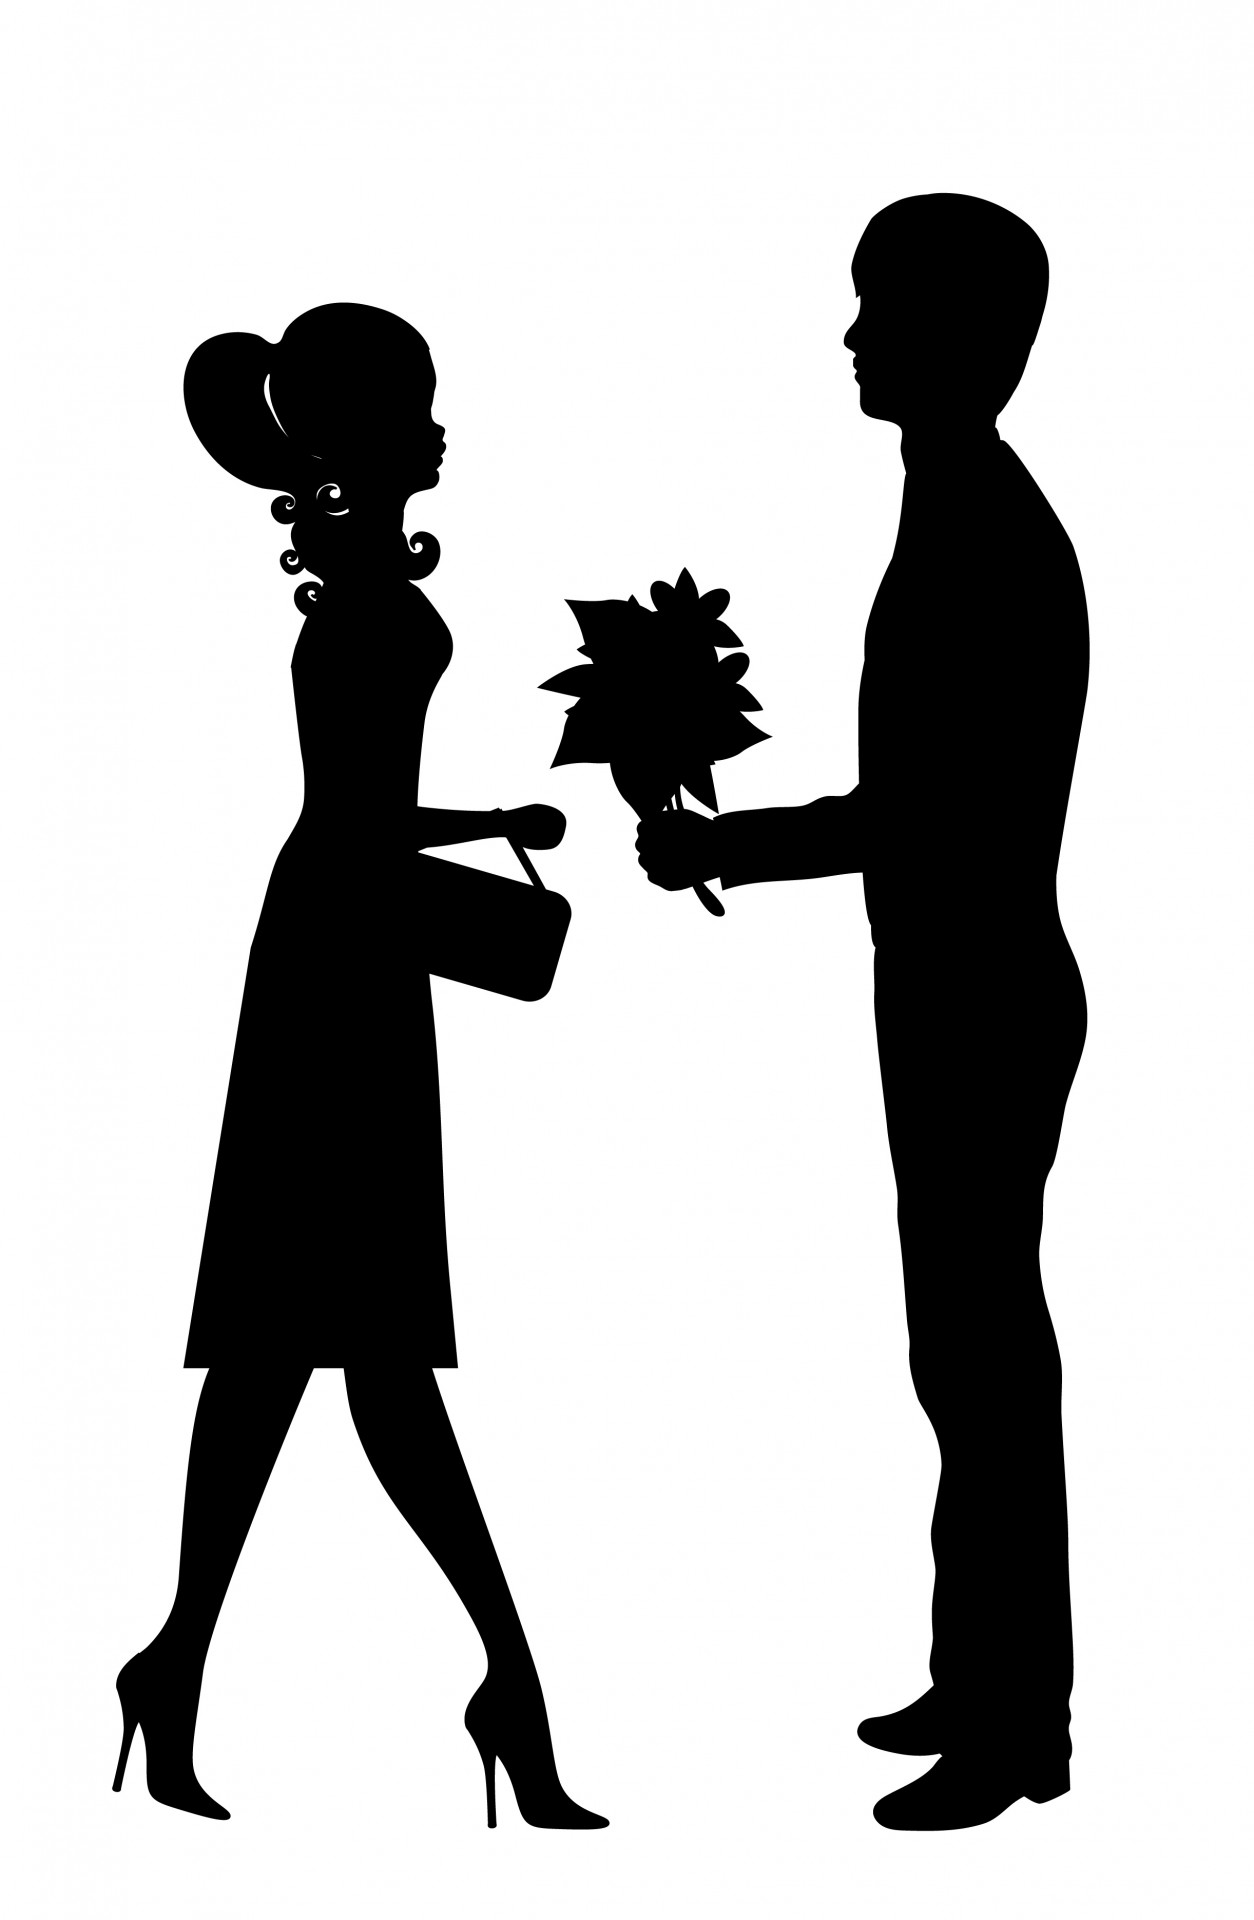 Romantic Young Couple Clipart Free Stock-Romantic Young Couple Clipart Free Stock Photo-17